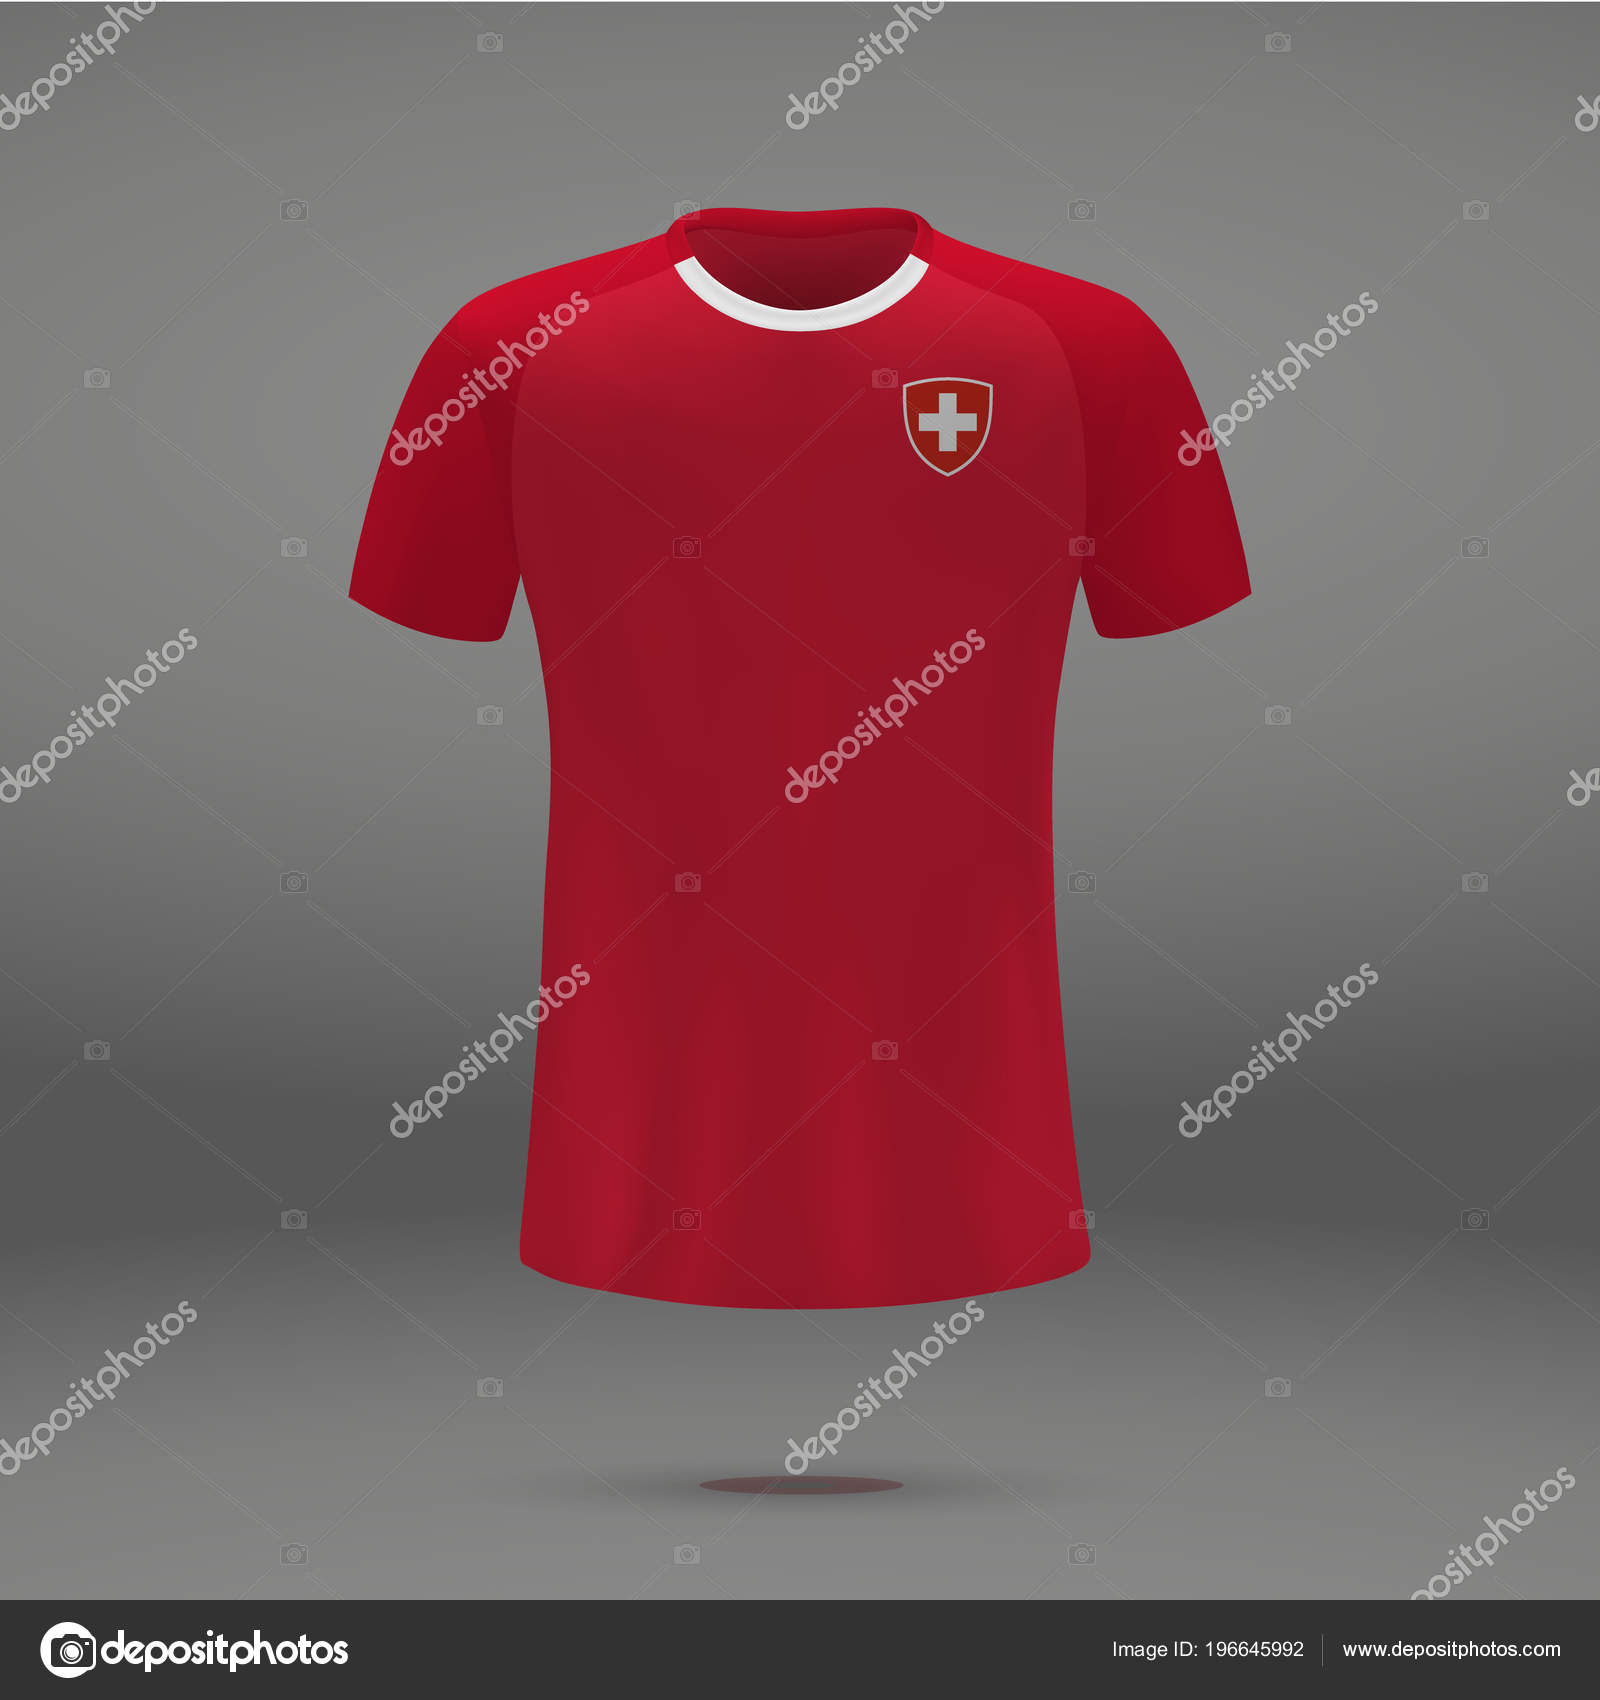 eabbc0cda17 Football Kit Switzerland 2018 Shirt Template Soccer Jersey Vector  Illustration — Stock Vector